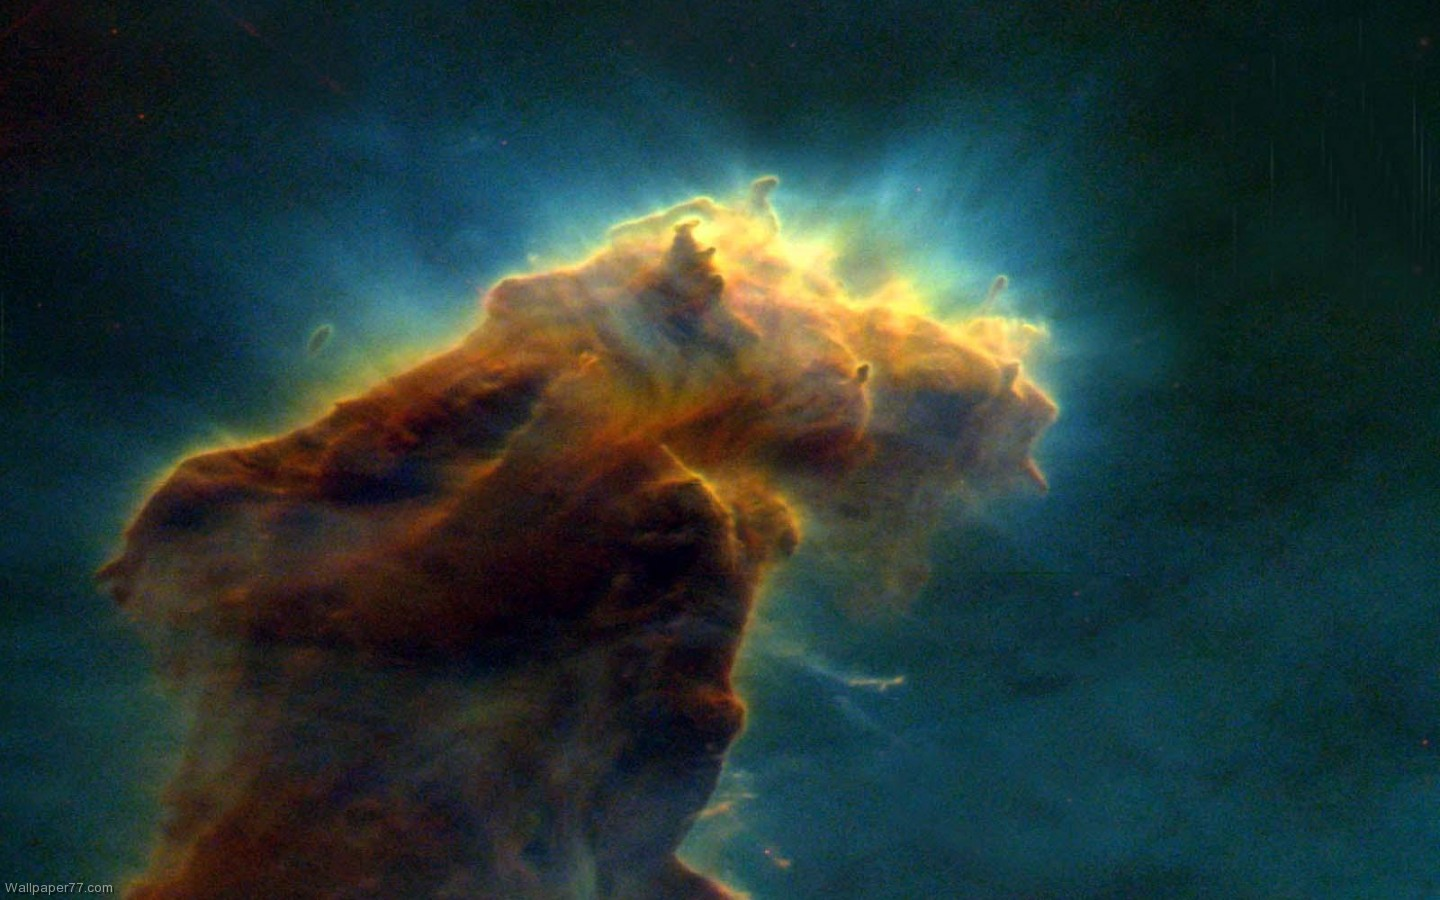 Nebula Clouds galaxy wallpapers space wallpapers nebula wallpapers 1440x900